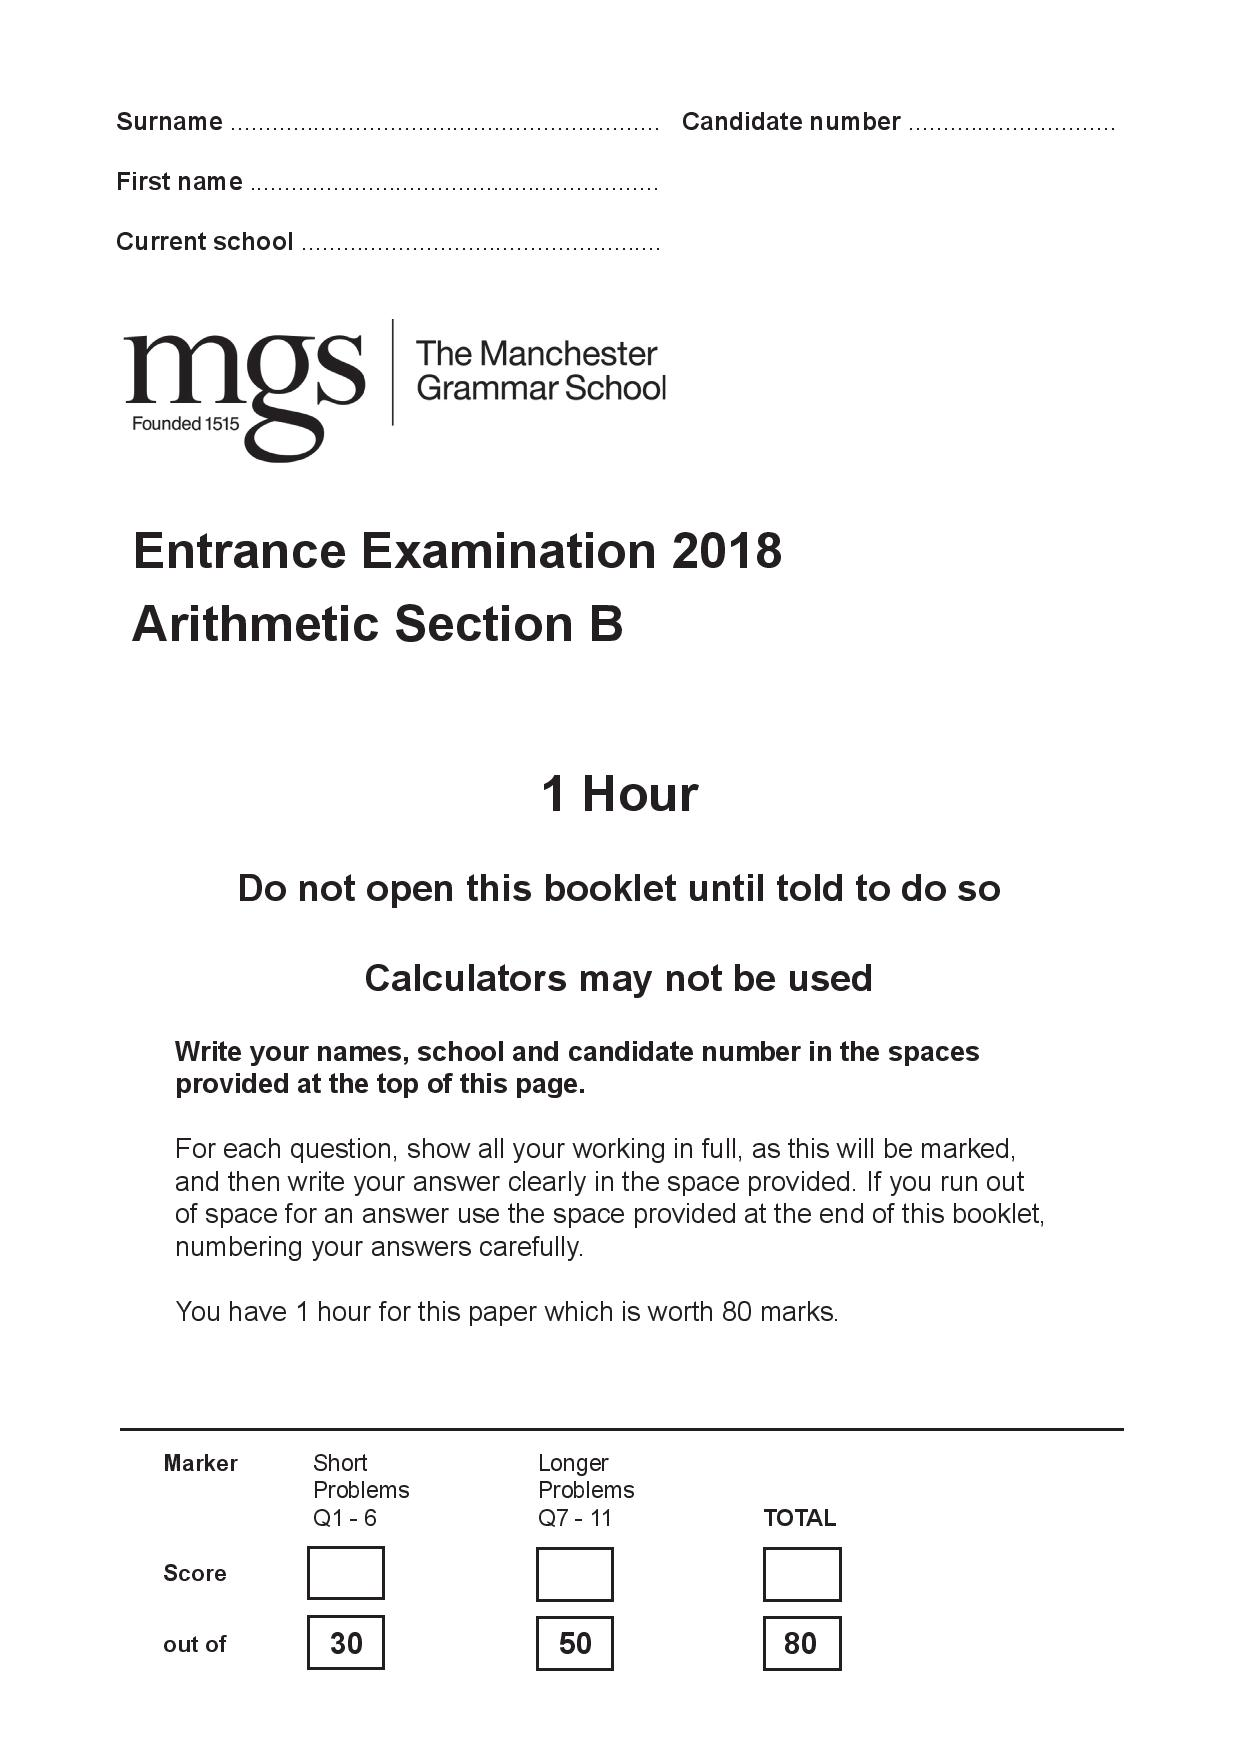 The Manchester Grammar School Entrance Examination 2018 Arithmetic Section B Answer Paper page 001